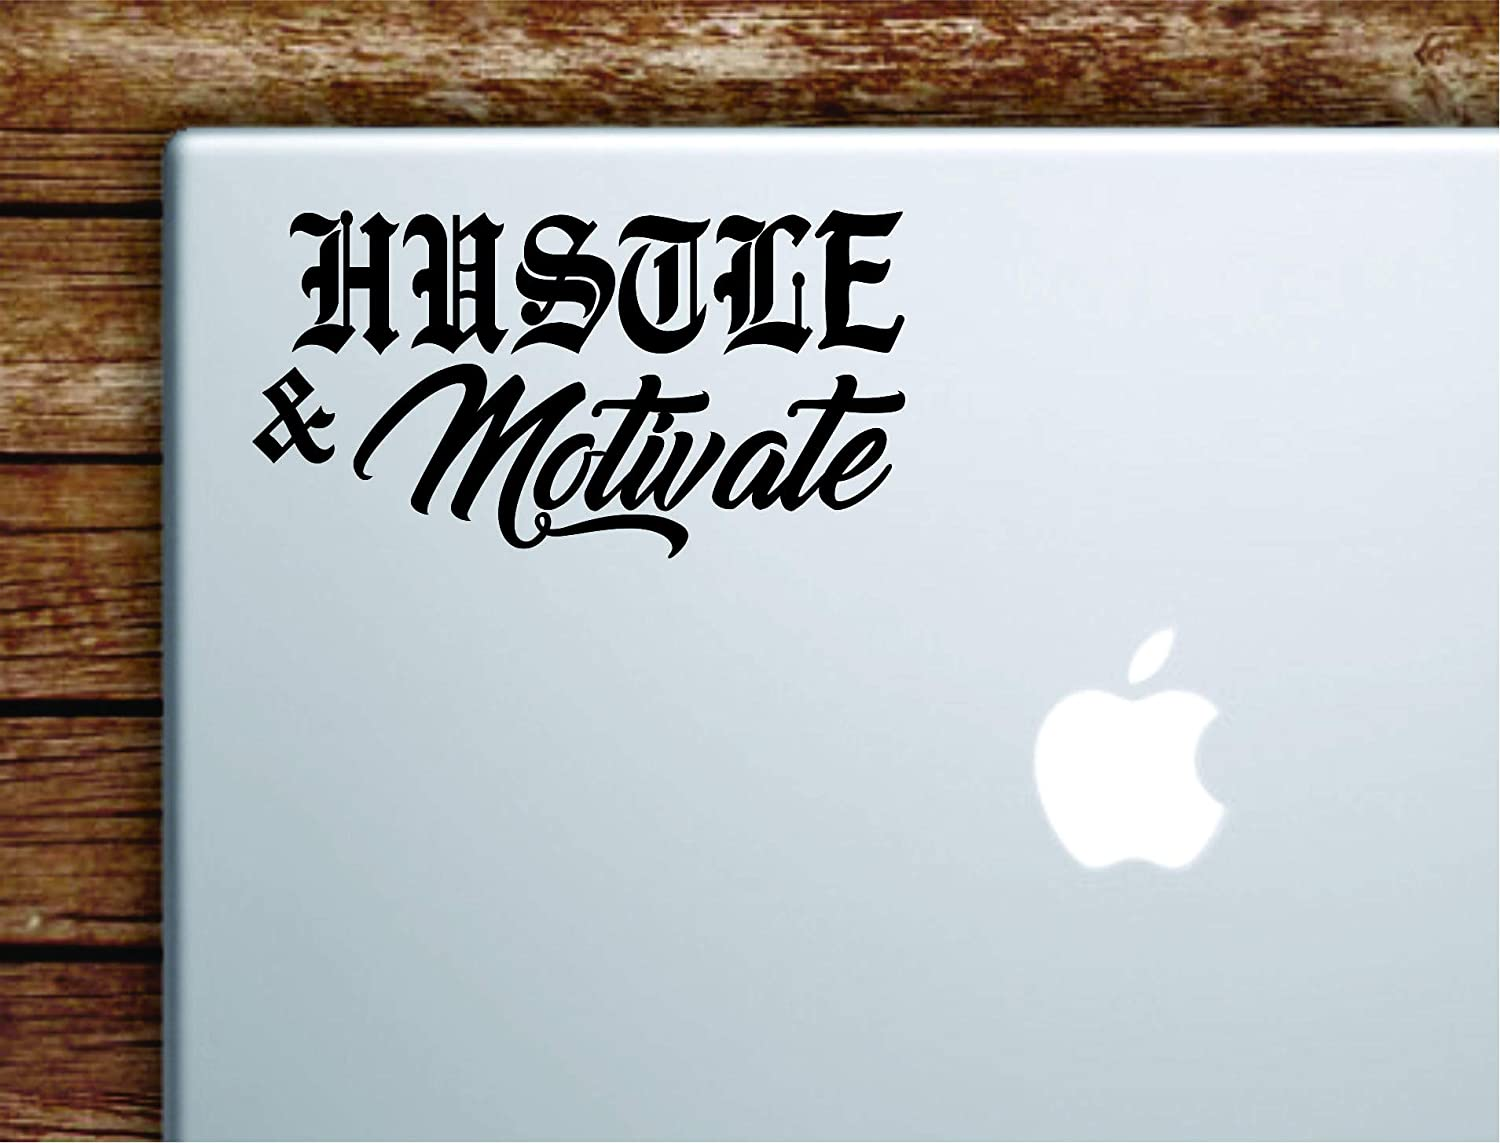 Hustle and Motivate Wall Decal Quote Laptop Computer Car Truck Window Decor Decoration Art Vinyl Sticker Inspirational Grind Inspire Motivational Money Gym Sports Fitness Success Office